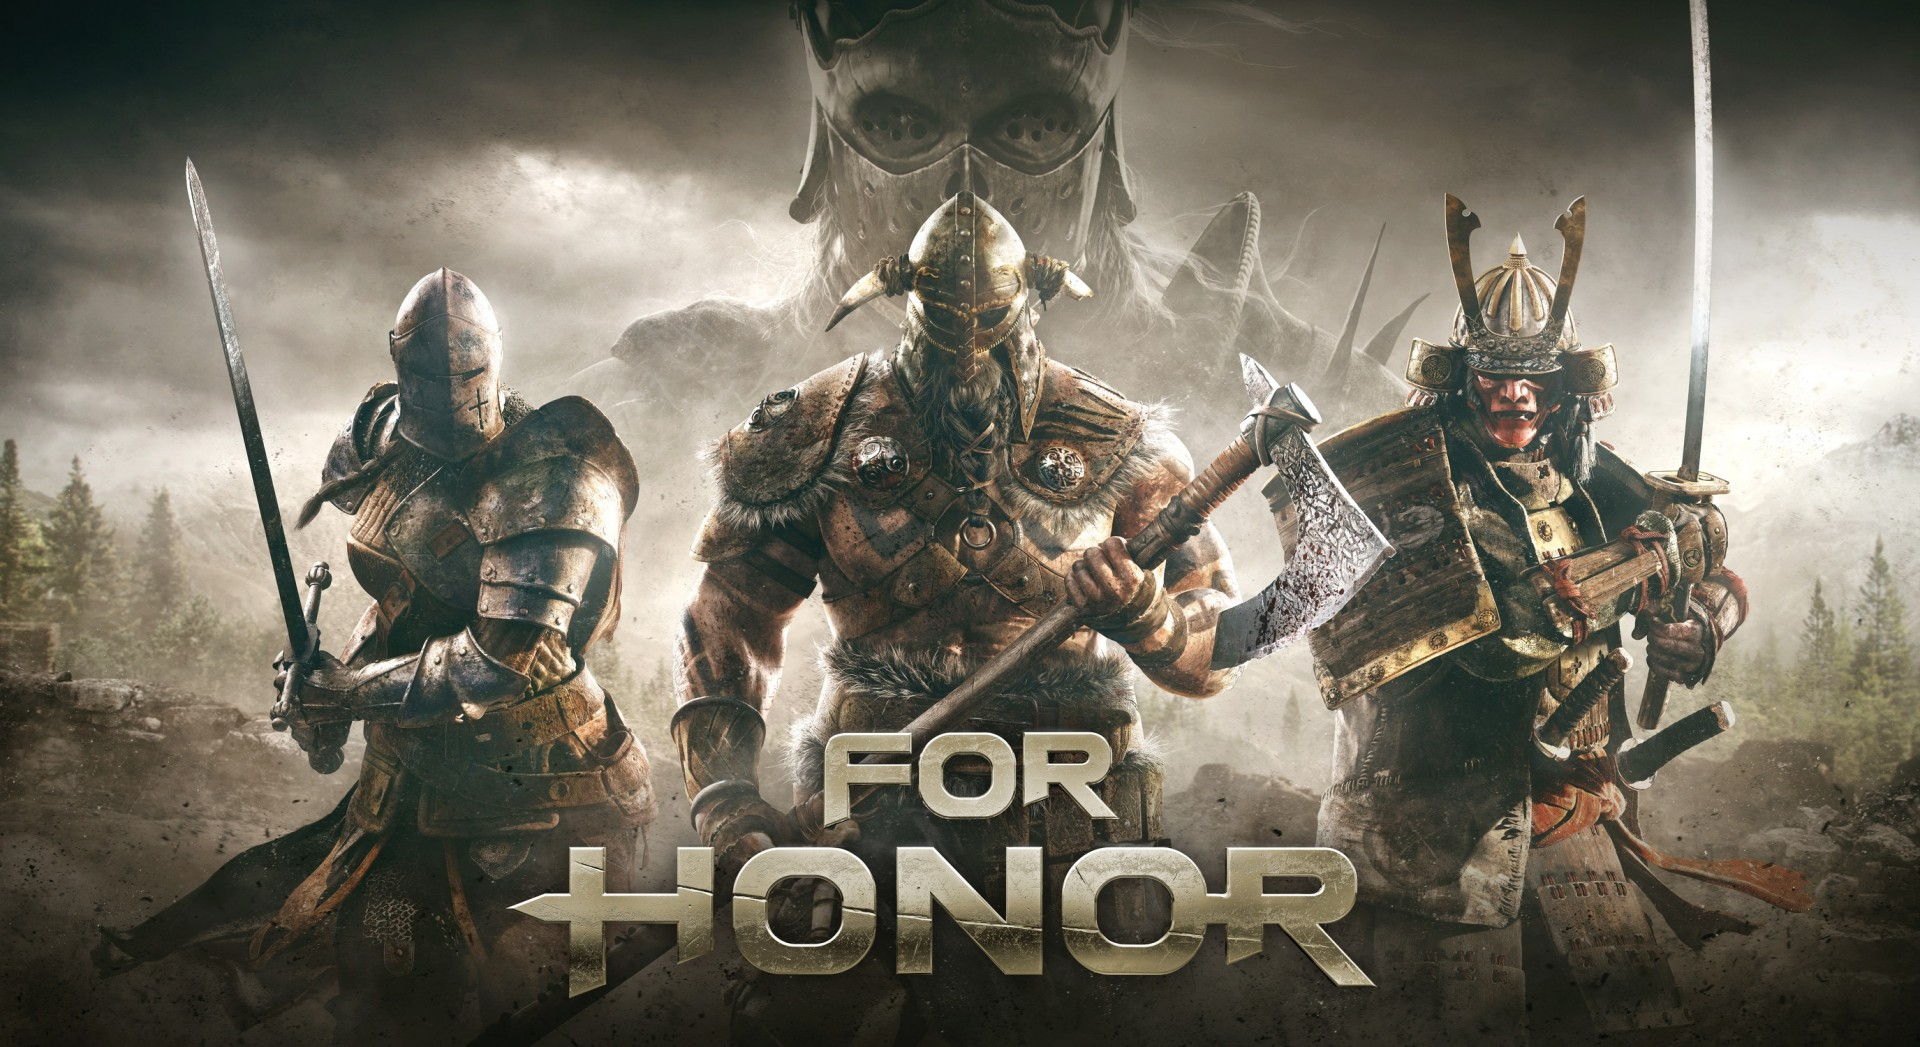 For Honor: Una brutal y espectacular renovación del multiplayer